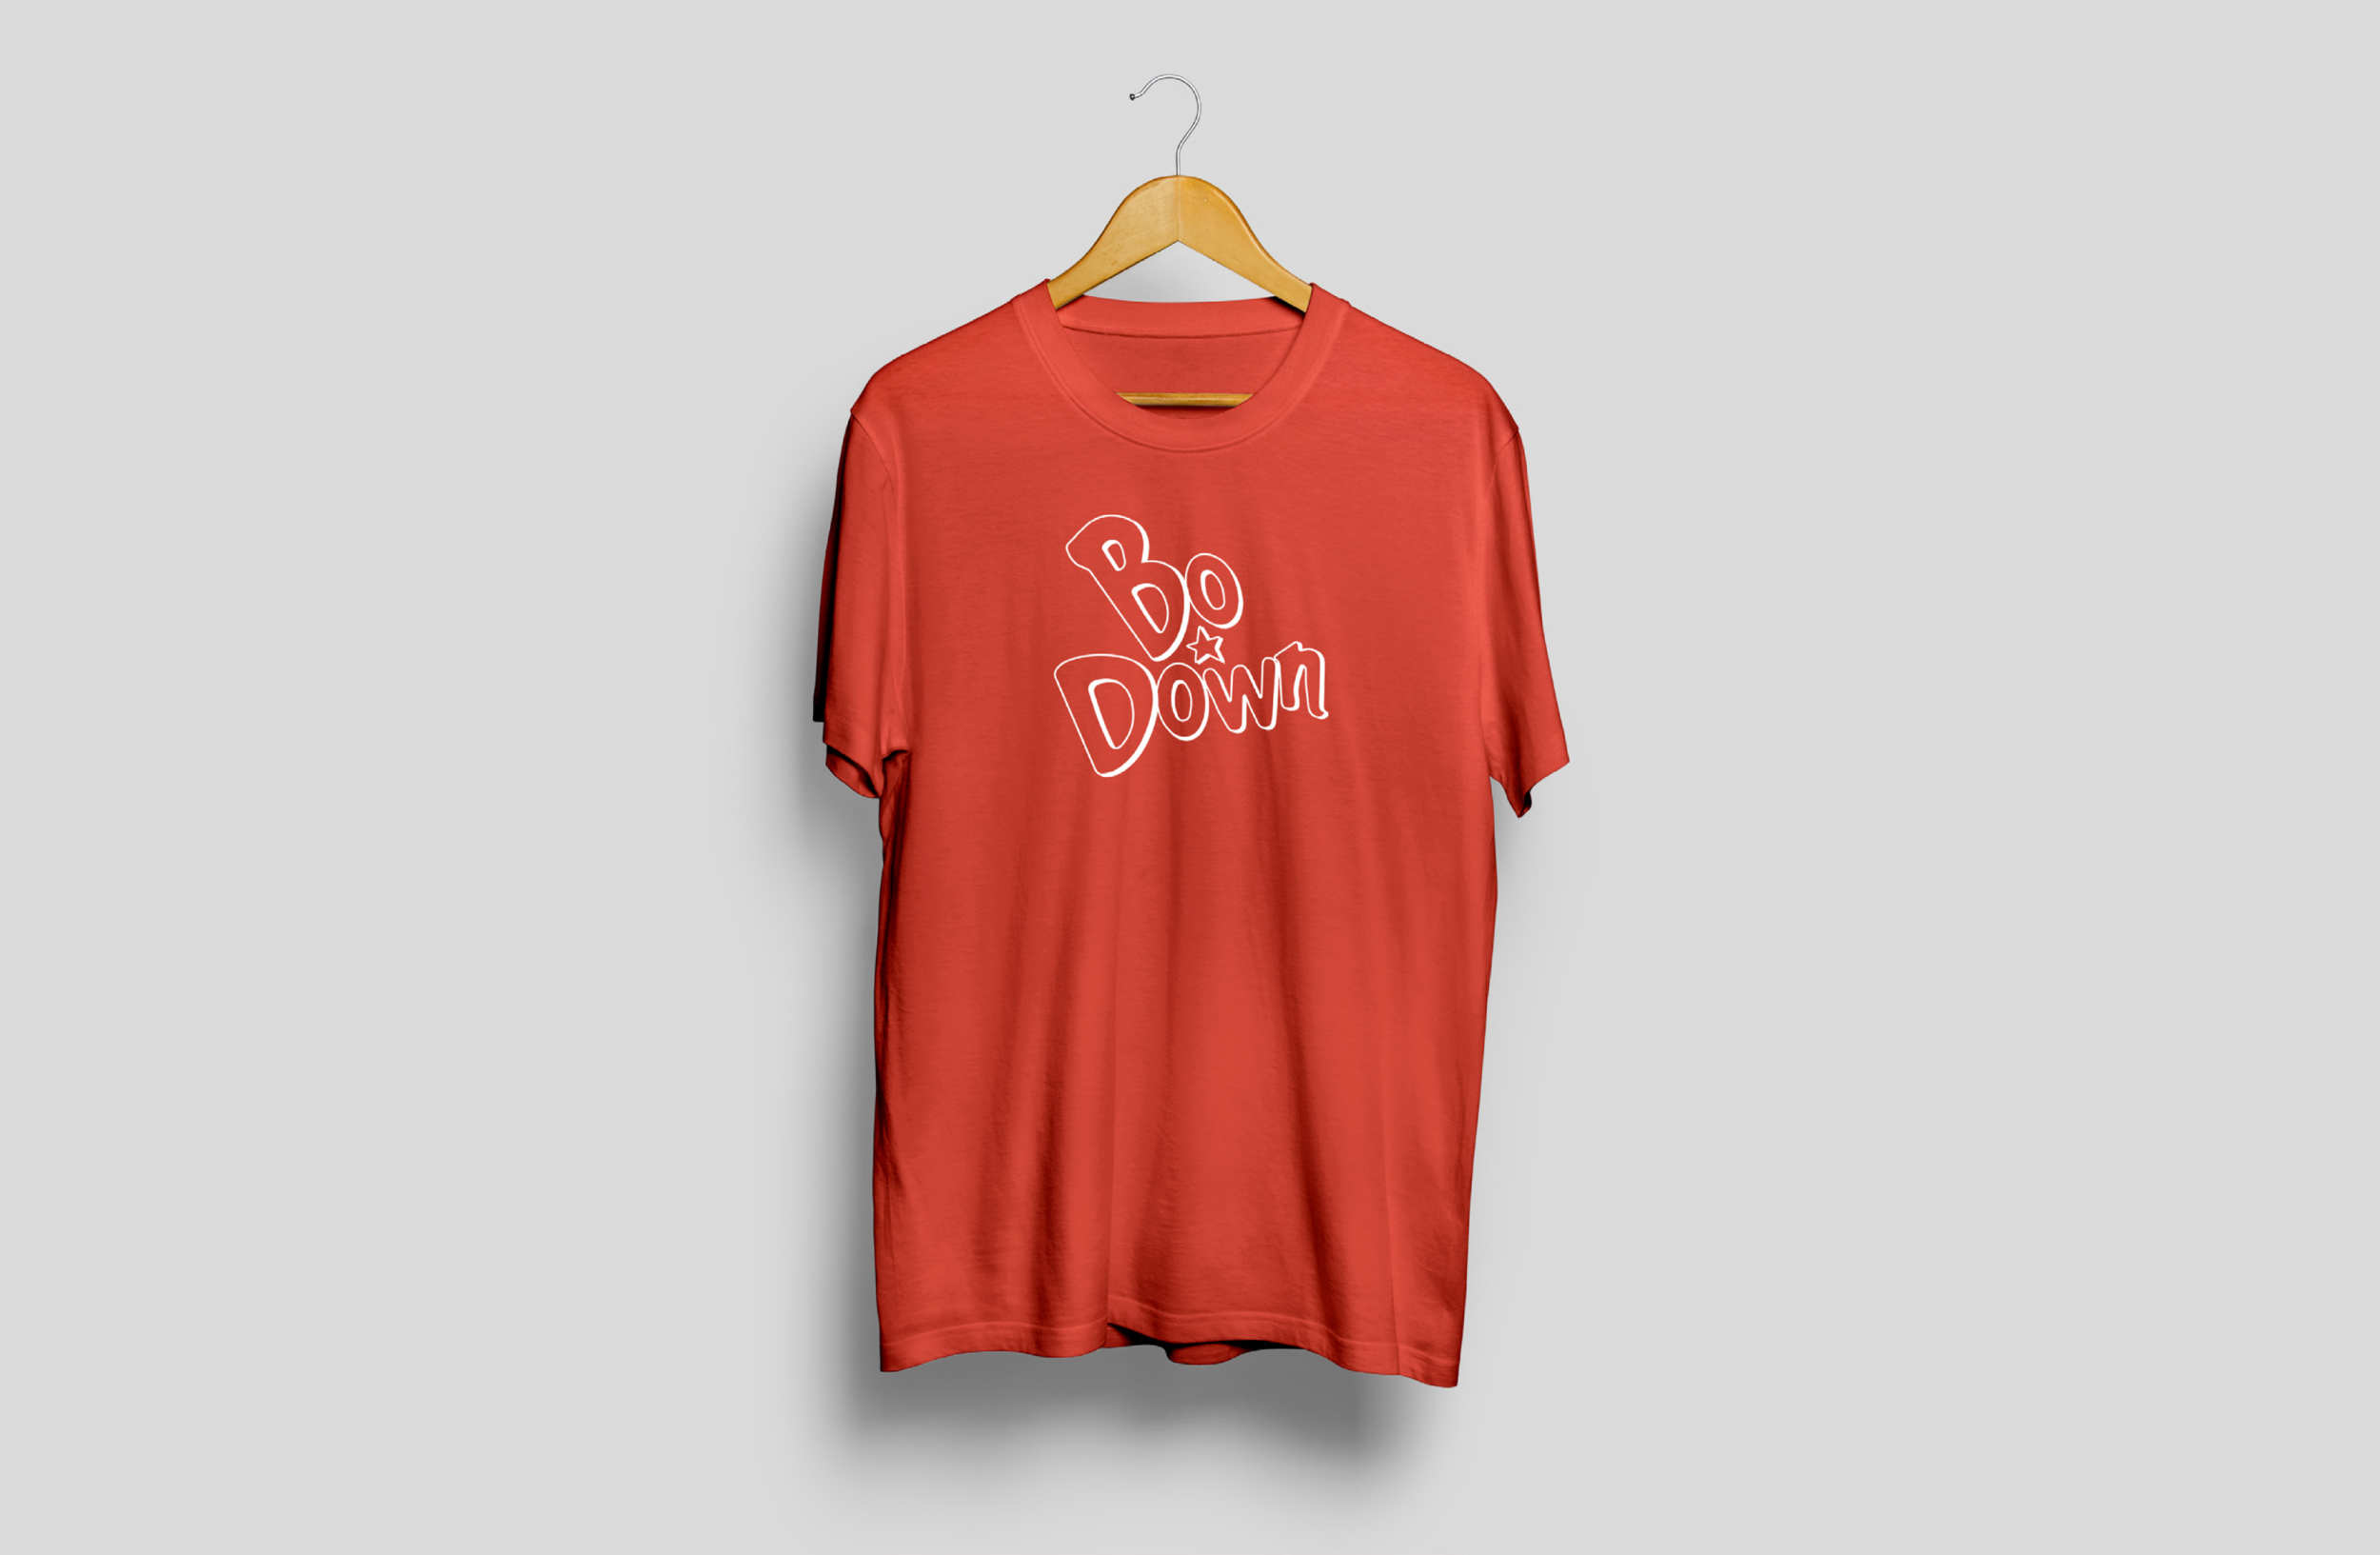 Bo Down t-shirt design for prospective client pitch